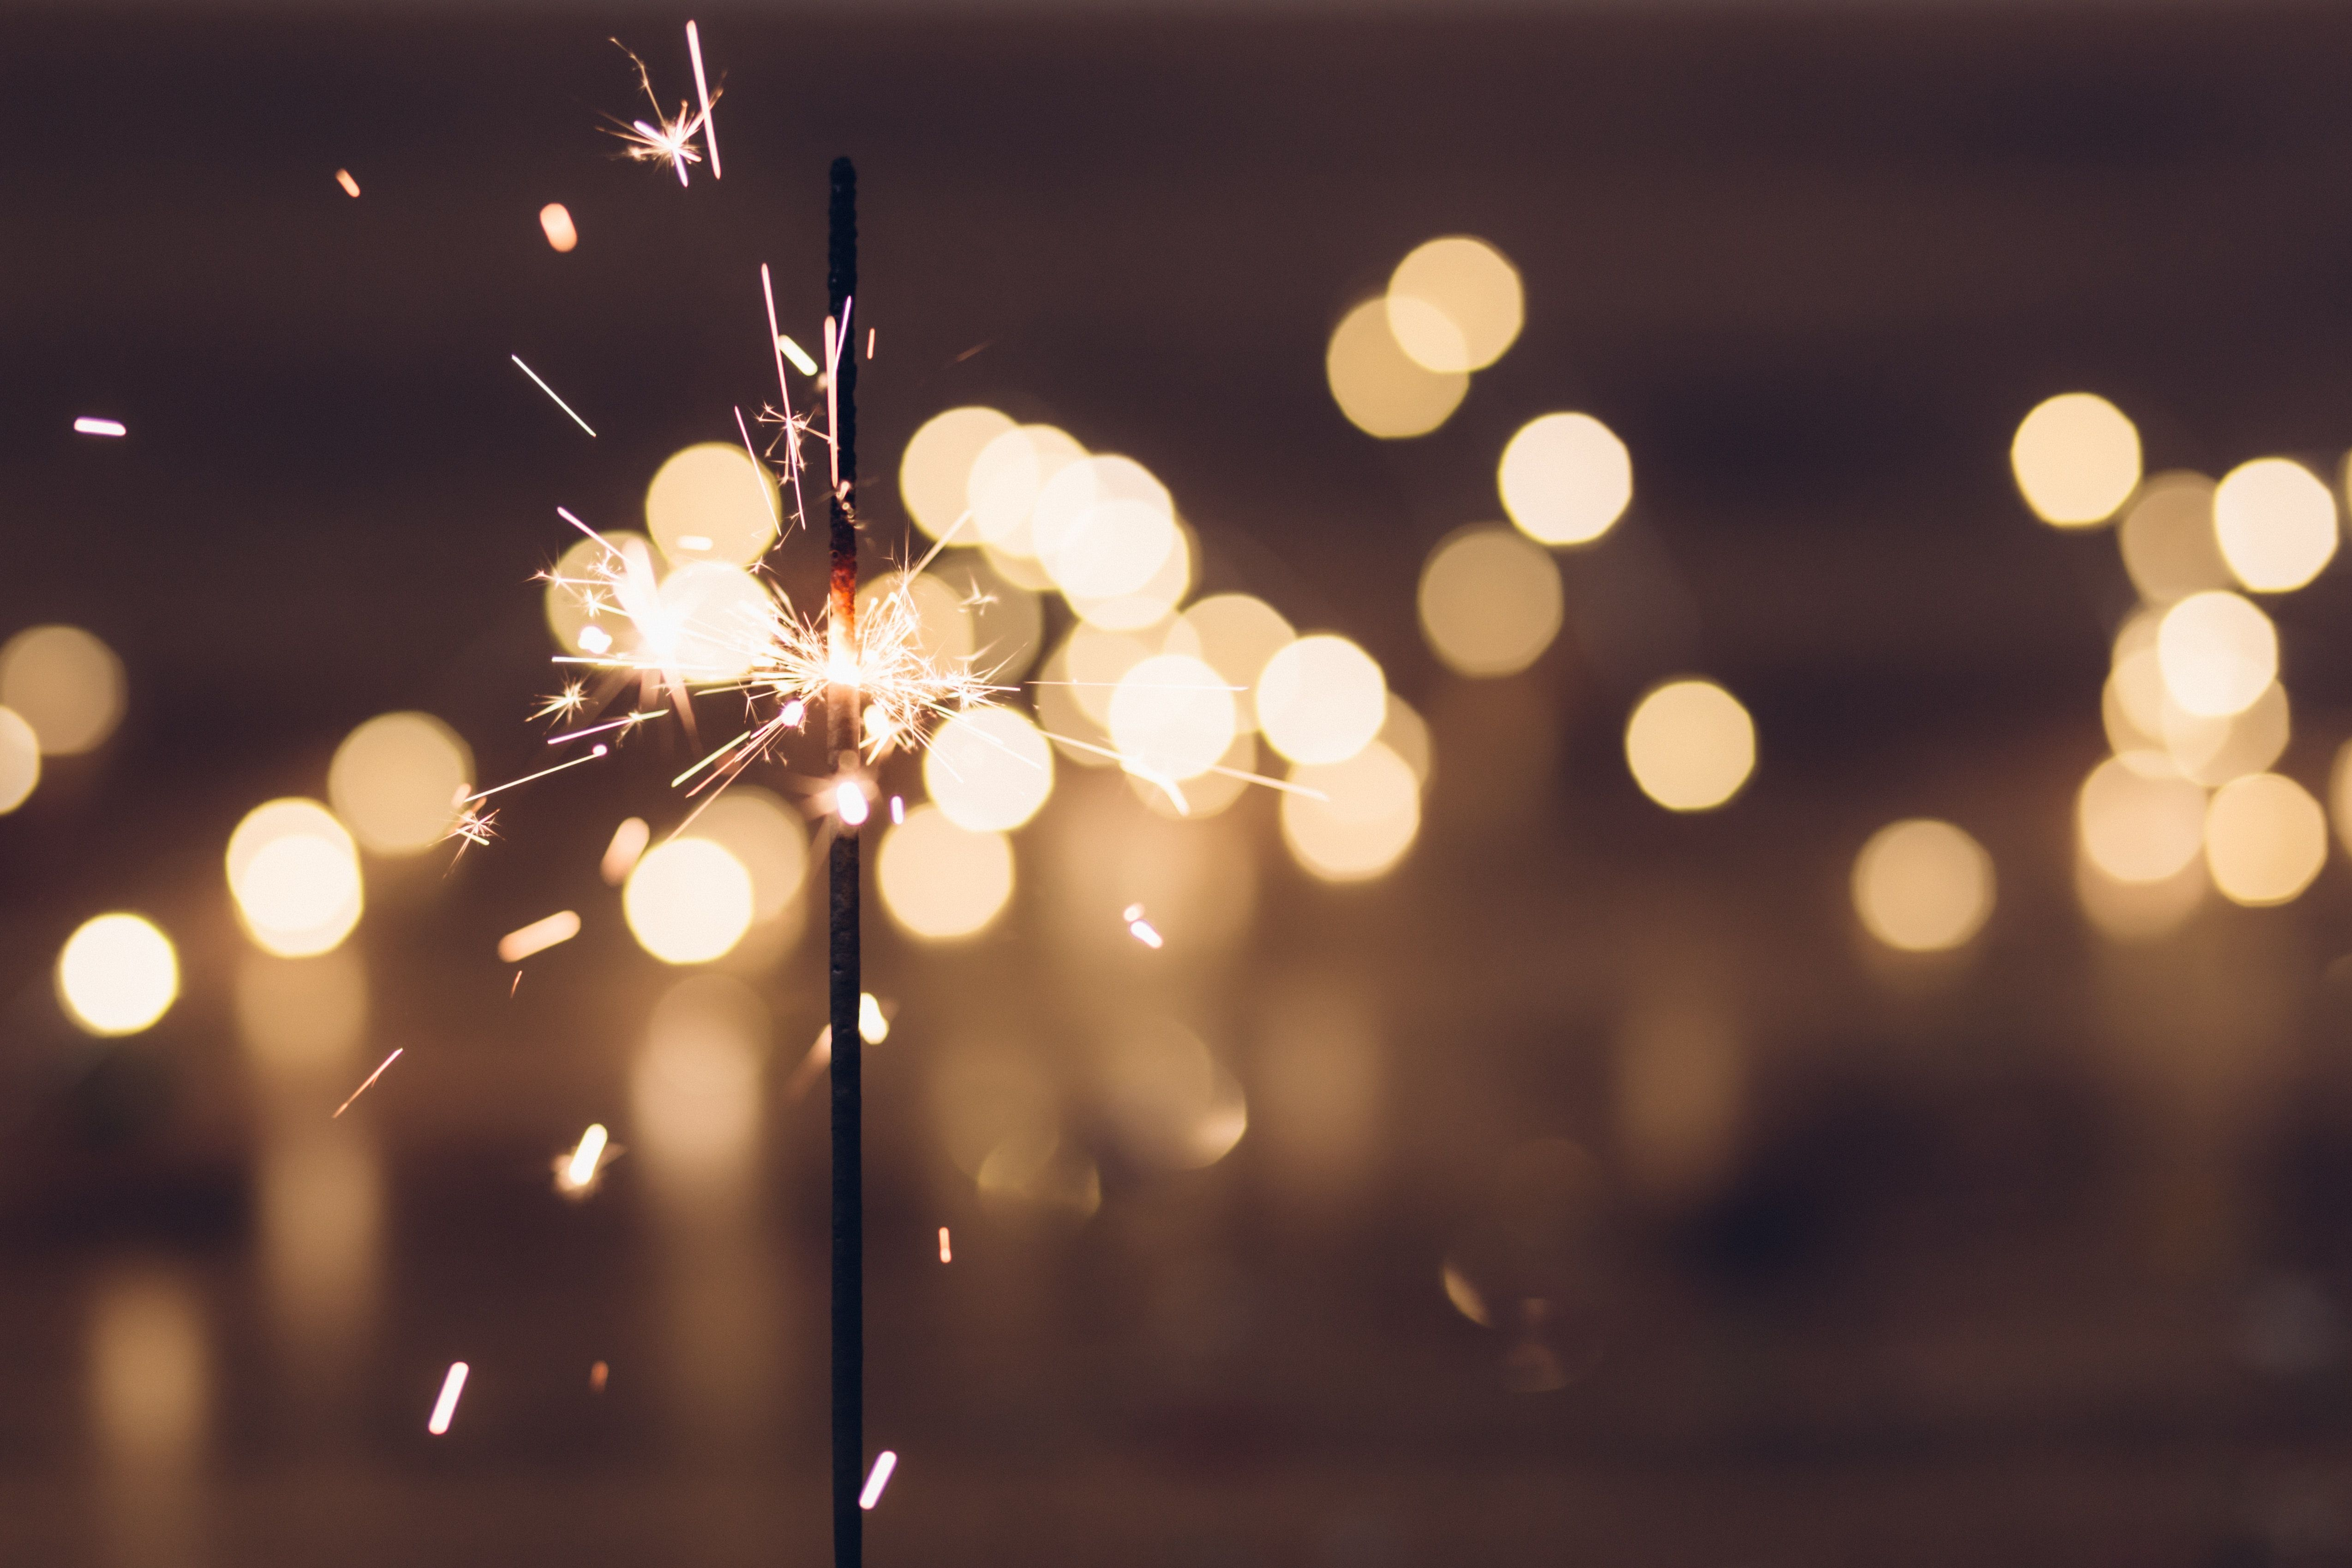 Discovering MErcy_2018 Year End Review_Firecrackers Launching Sparks